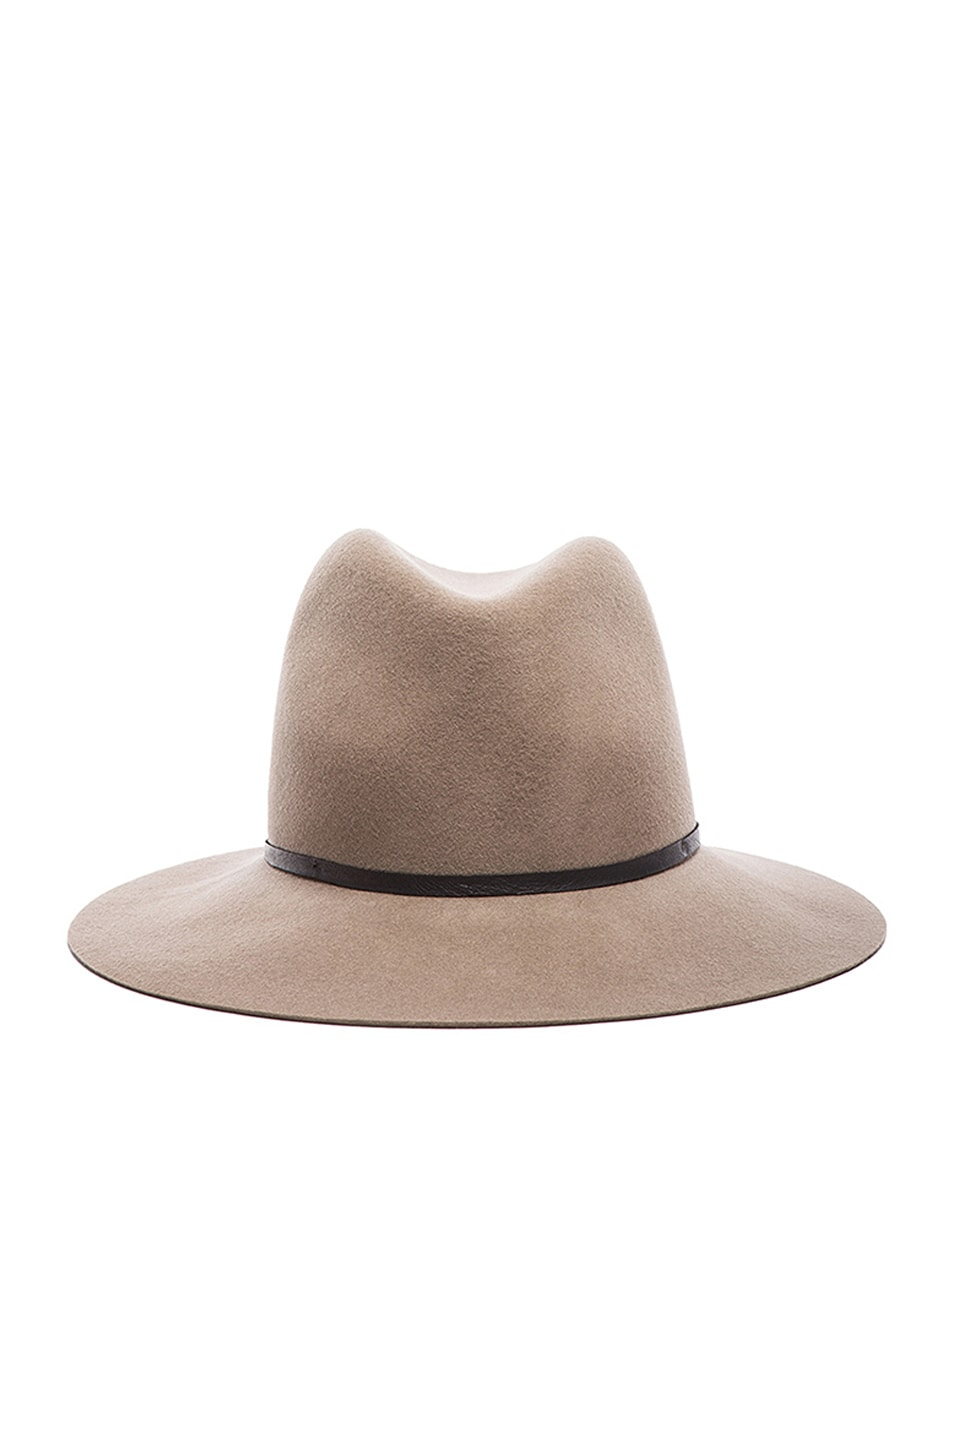 Image 1 of Janessa Leone Lola Wool Felt Hat in Camel